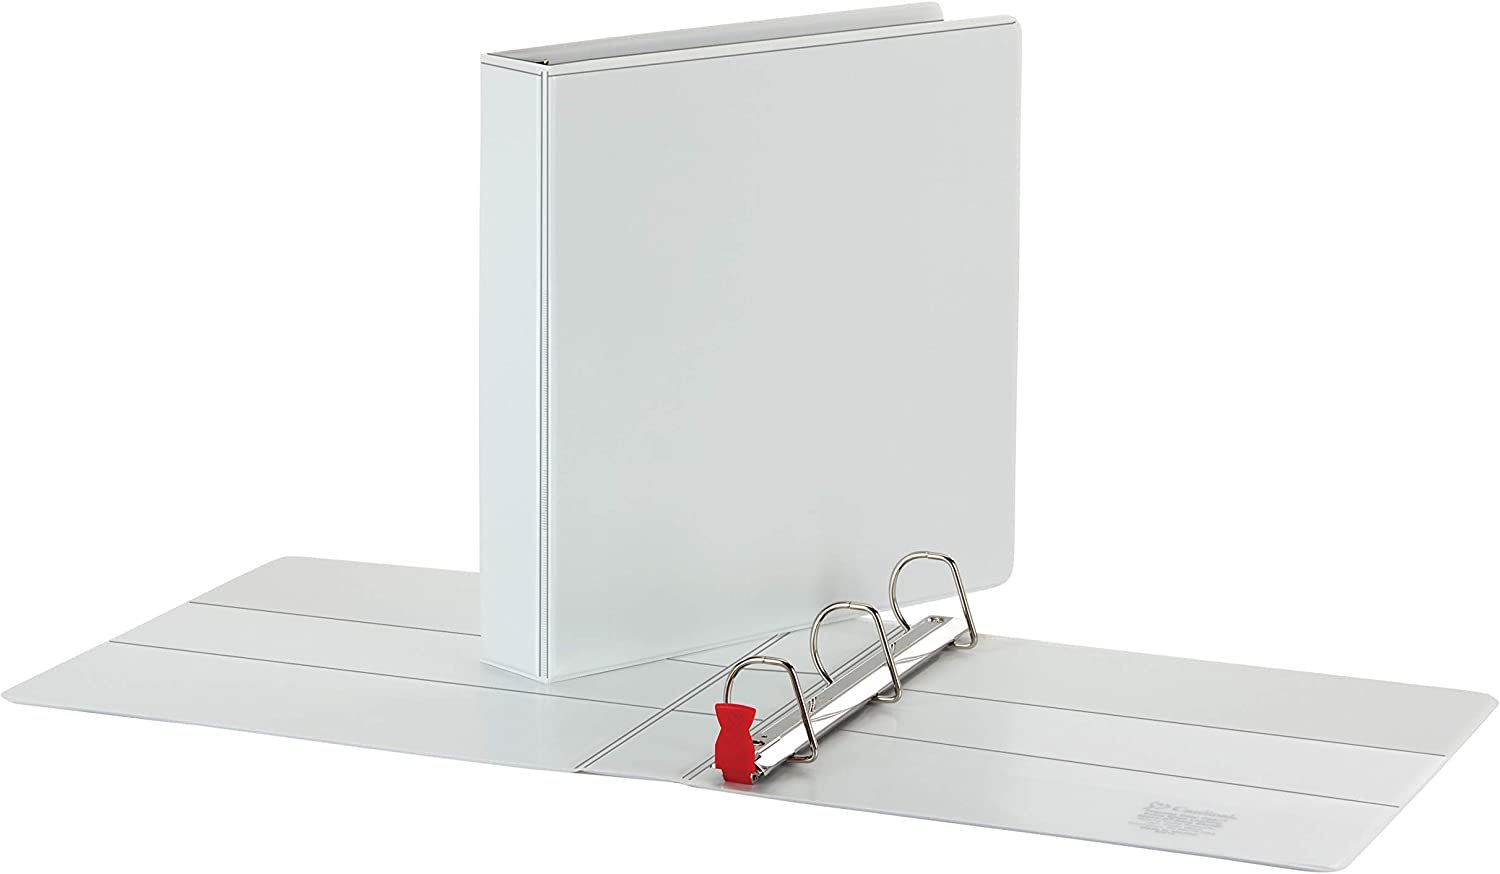 ClearVue Cover ONE-Touch Easy Open Locking Slant-D Rings 2 White Cardinal Premier Extra-Wide 3-Ring Binder 13320 565-Sheet Capacity